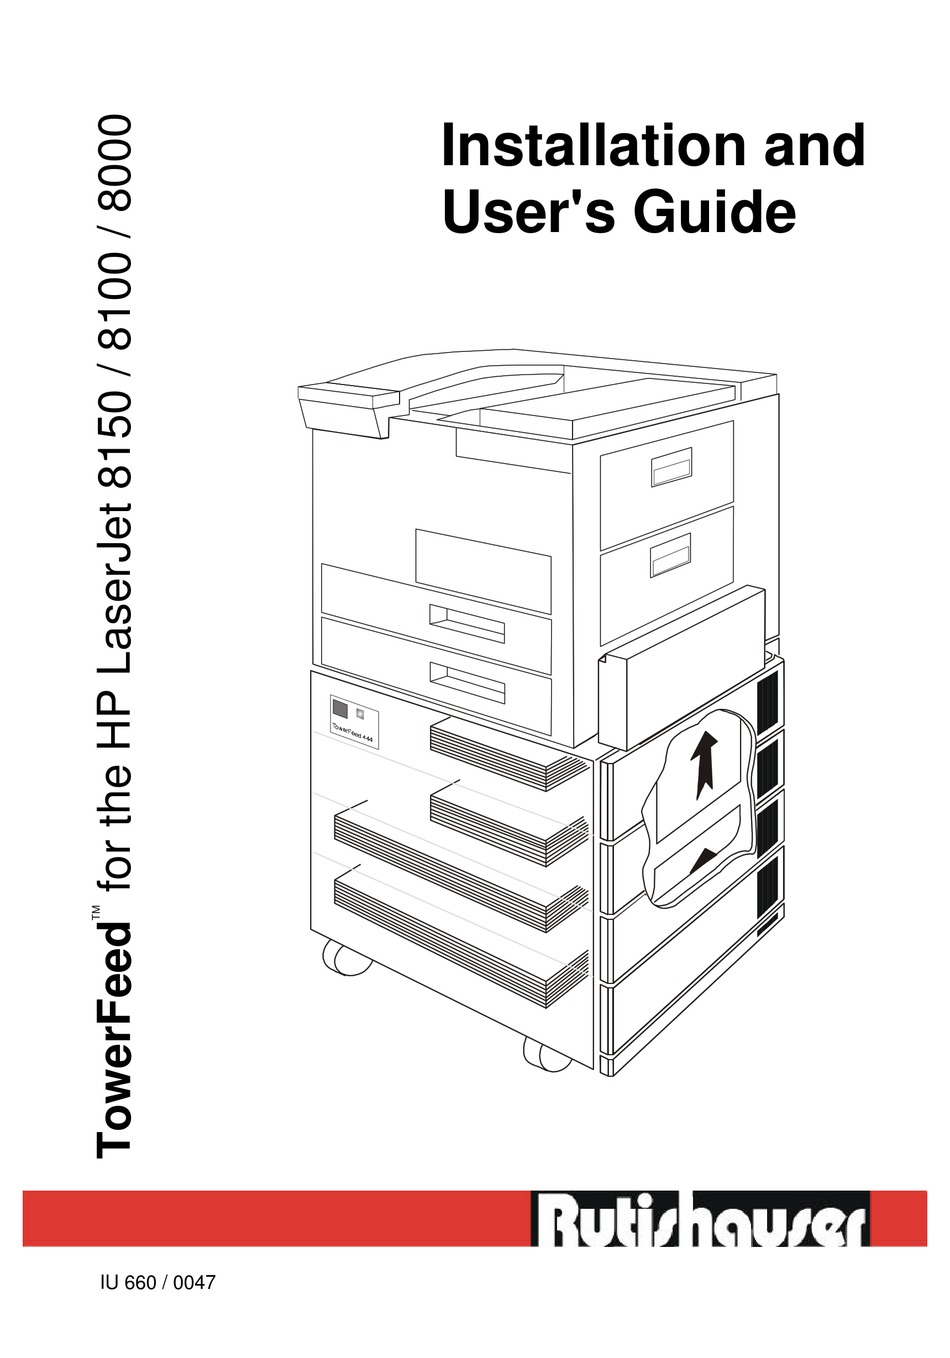 RUTISHAUSER 8000 INSTALLATION AND USER MANUAL Pdf Download